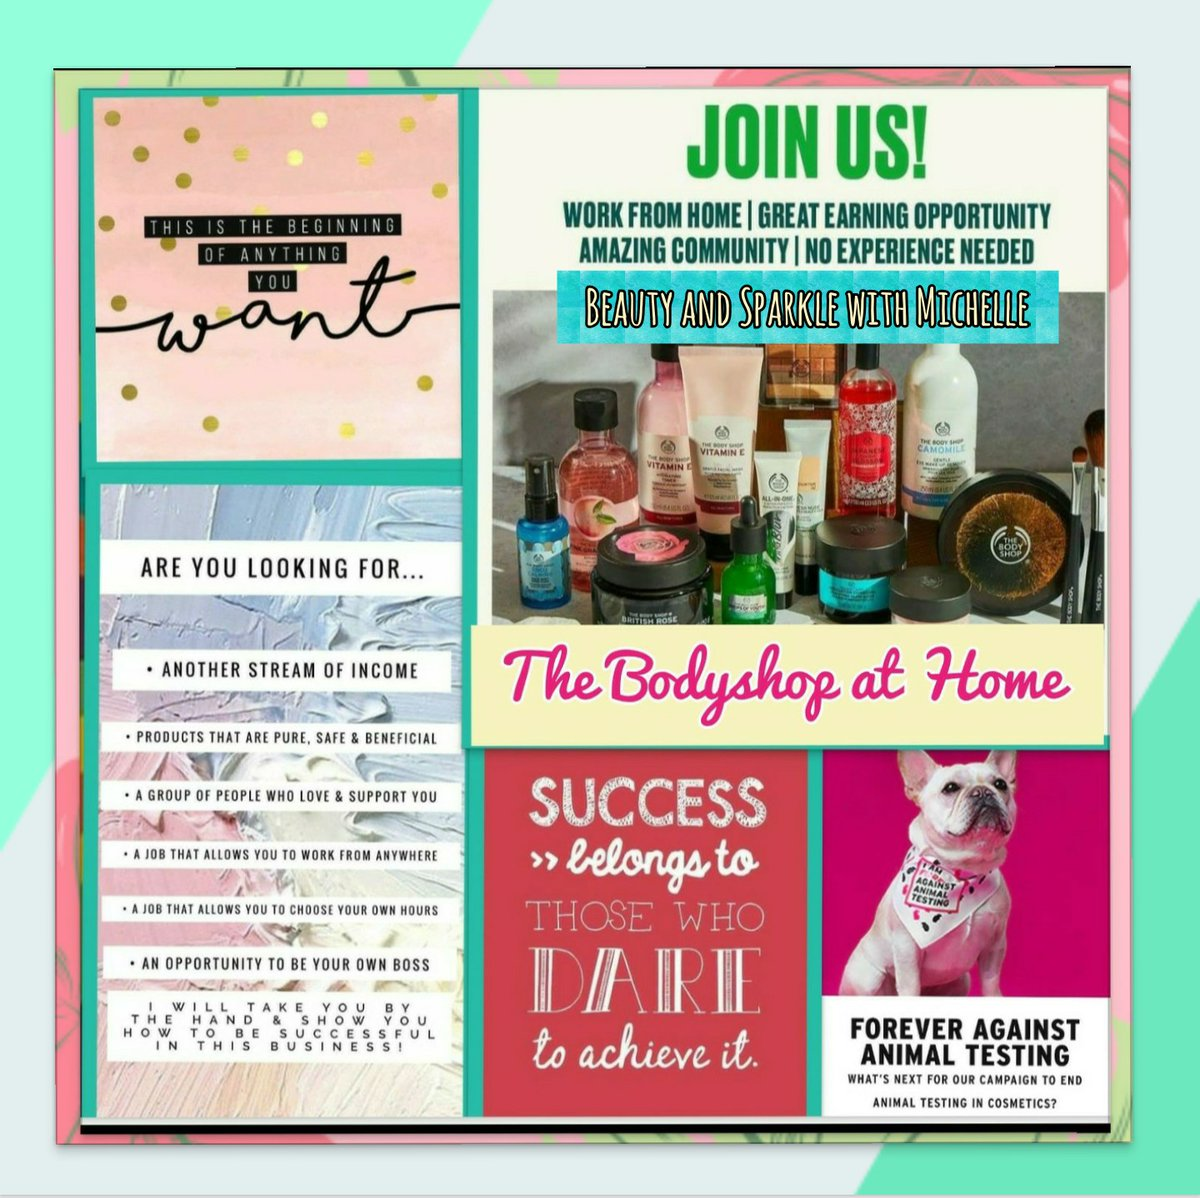 Bodyshop at Home Consultants wanted to join my team, work from home hours to suit, immediate start ..... Ask me for further information #tbsahuk #tbsahconsultant pic.twitter.com/U7srdbNXis